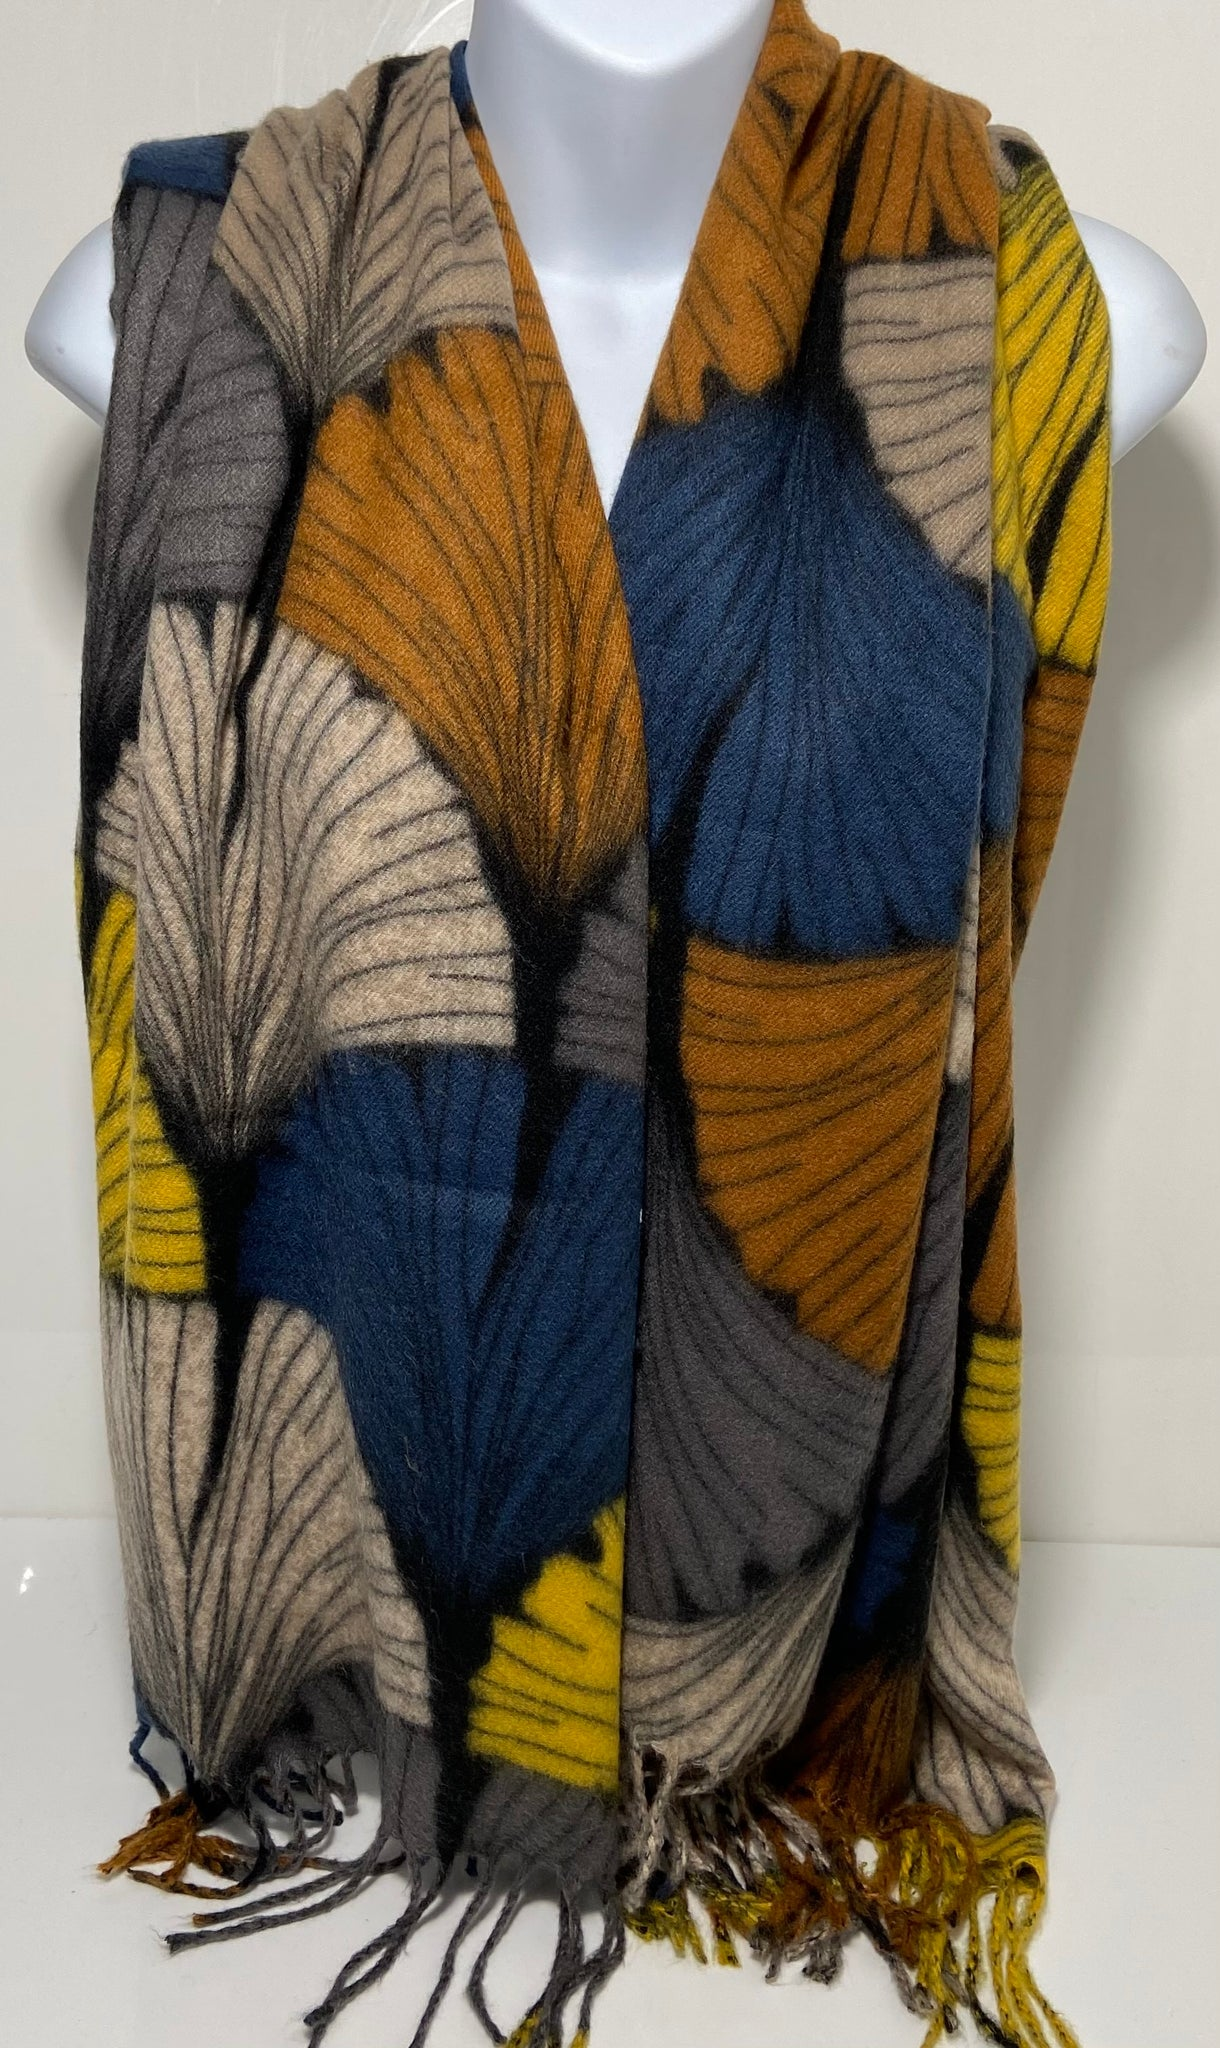 Super soft winter shell design scarf in navy/mustard/tan/beige